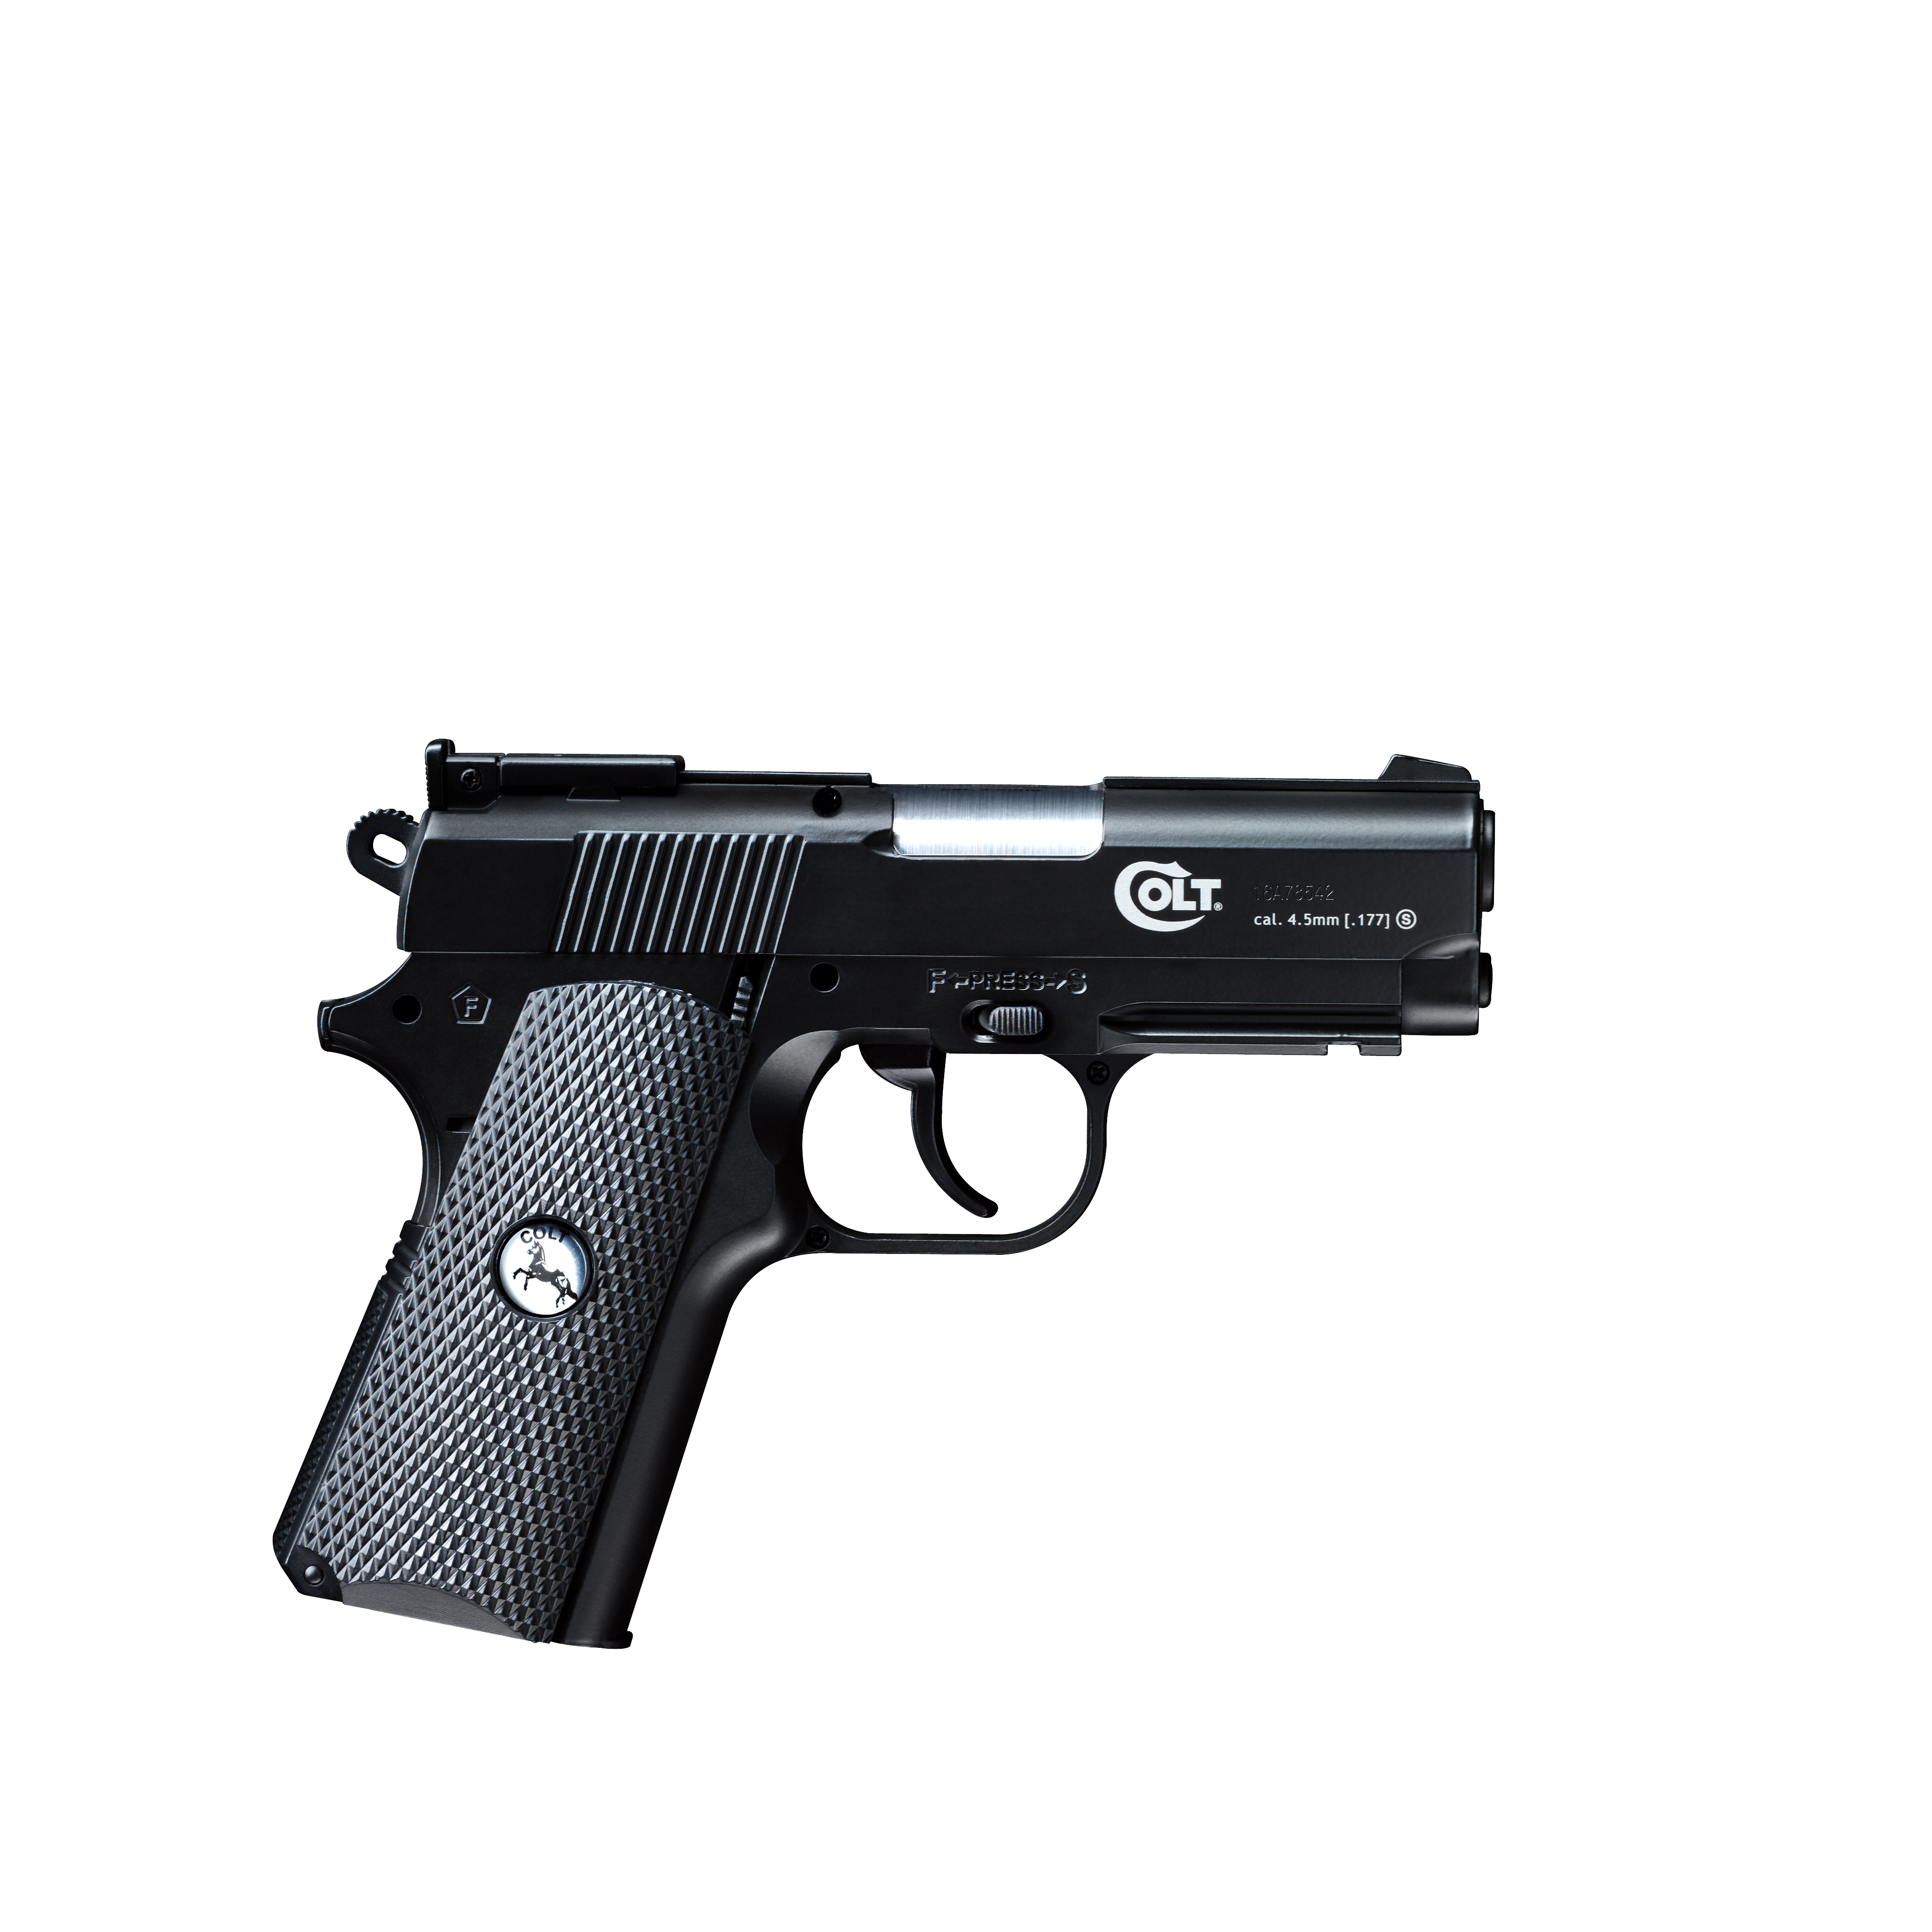 COLT (Umarex) CO2 Airgun Replica Defender